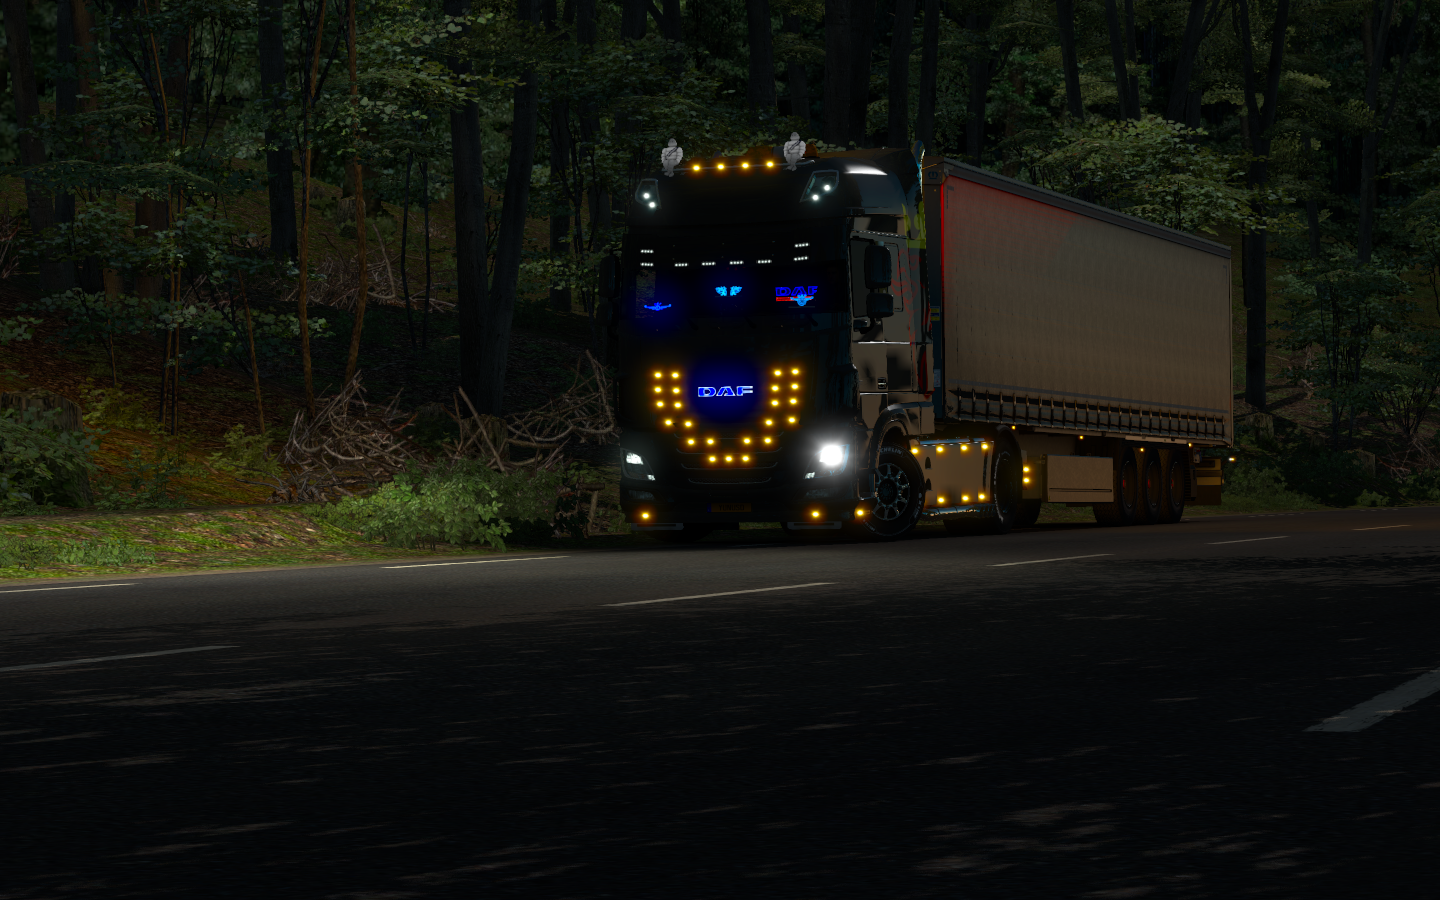 ets2_20190316_031700_00.png